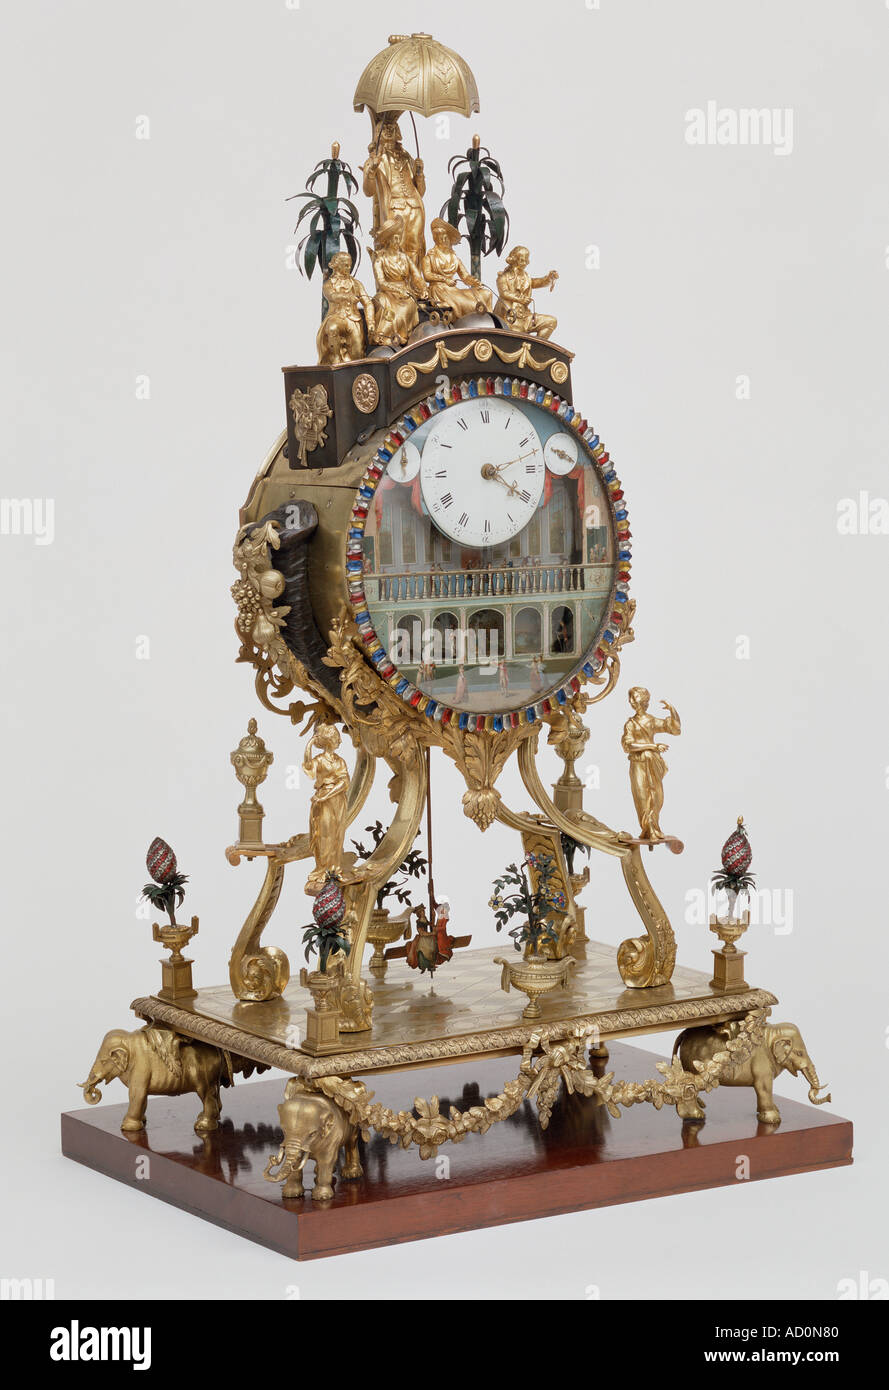 Clock by William Carpenter. London, England, late 18th century. - Stock Image